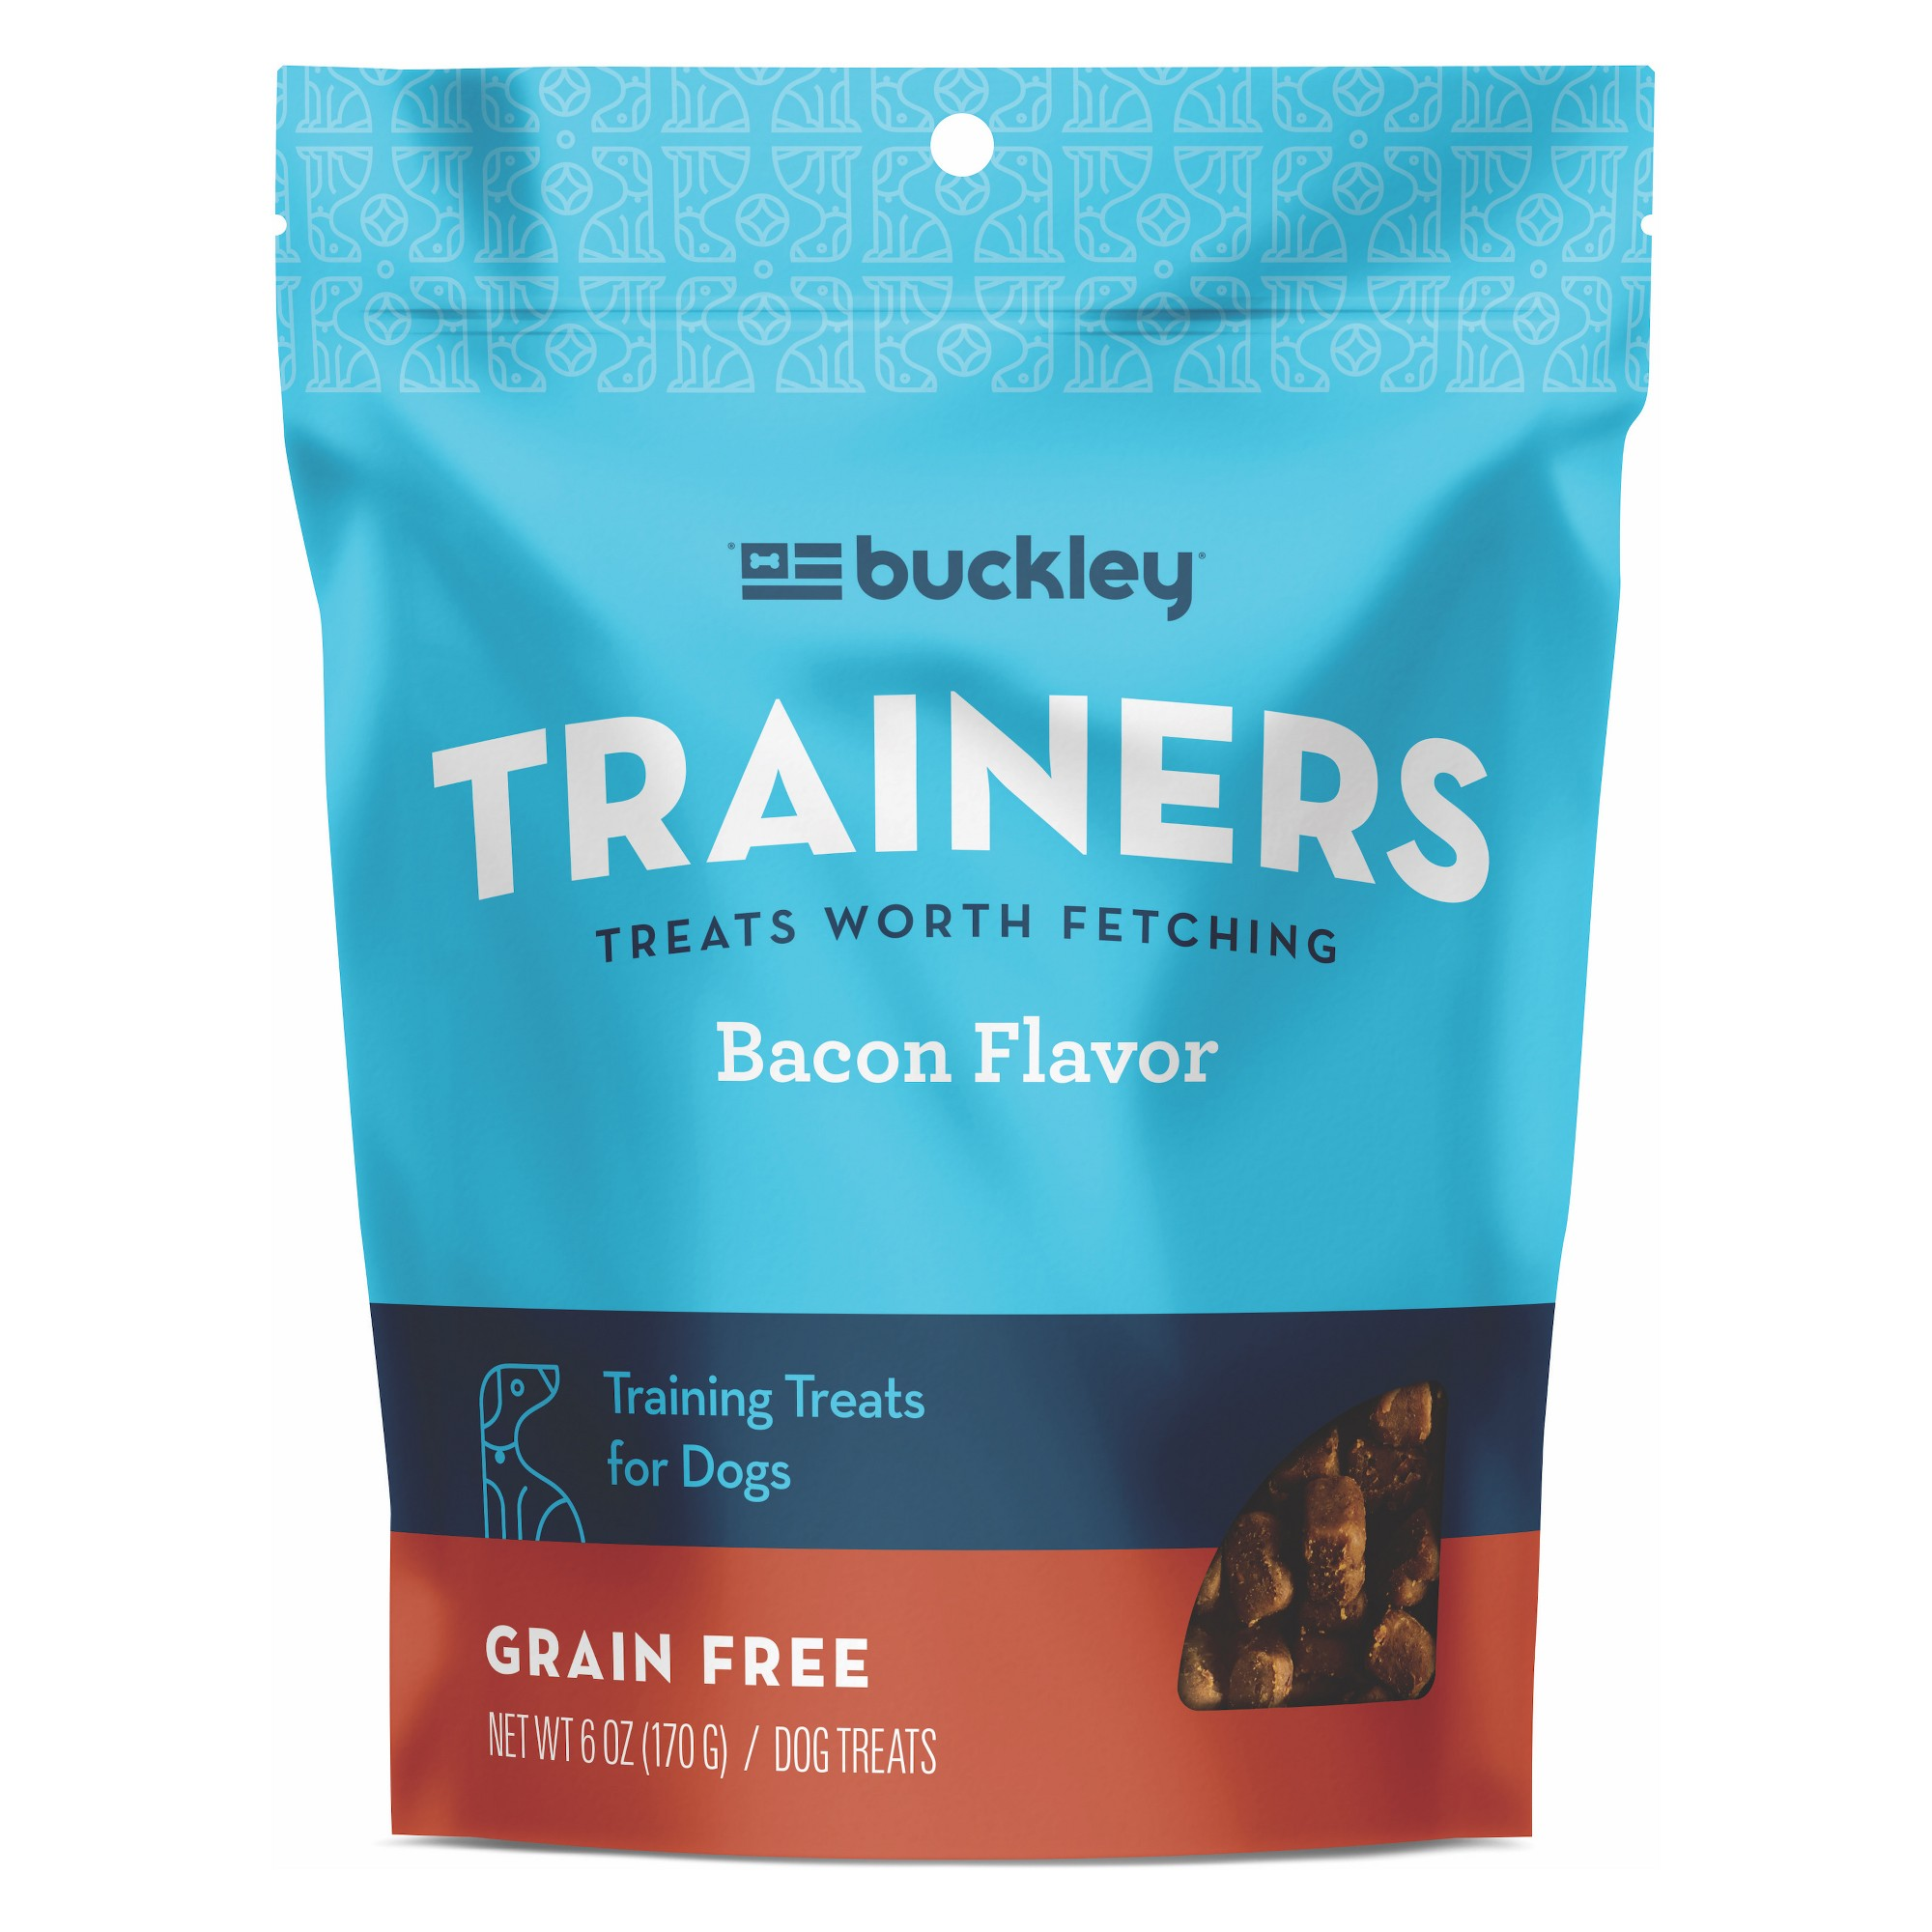 Buckley Trainers Bacon Dog Treats 6oz Dog Training Treats